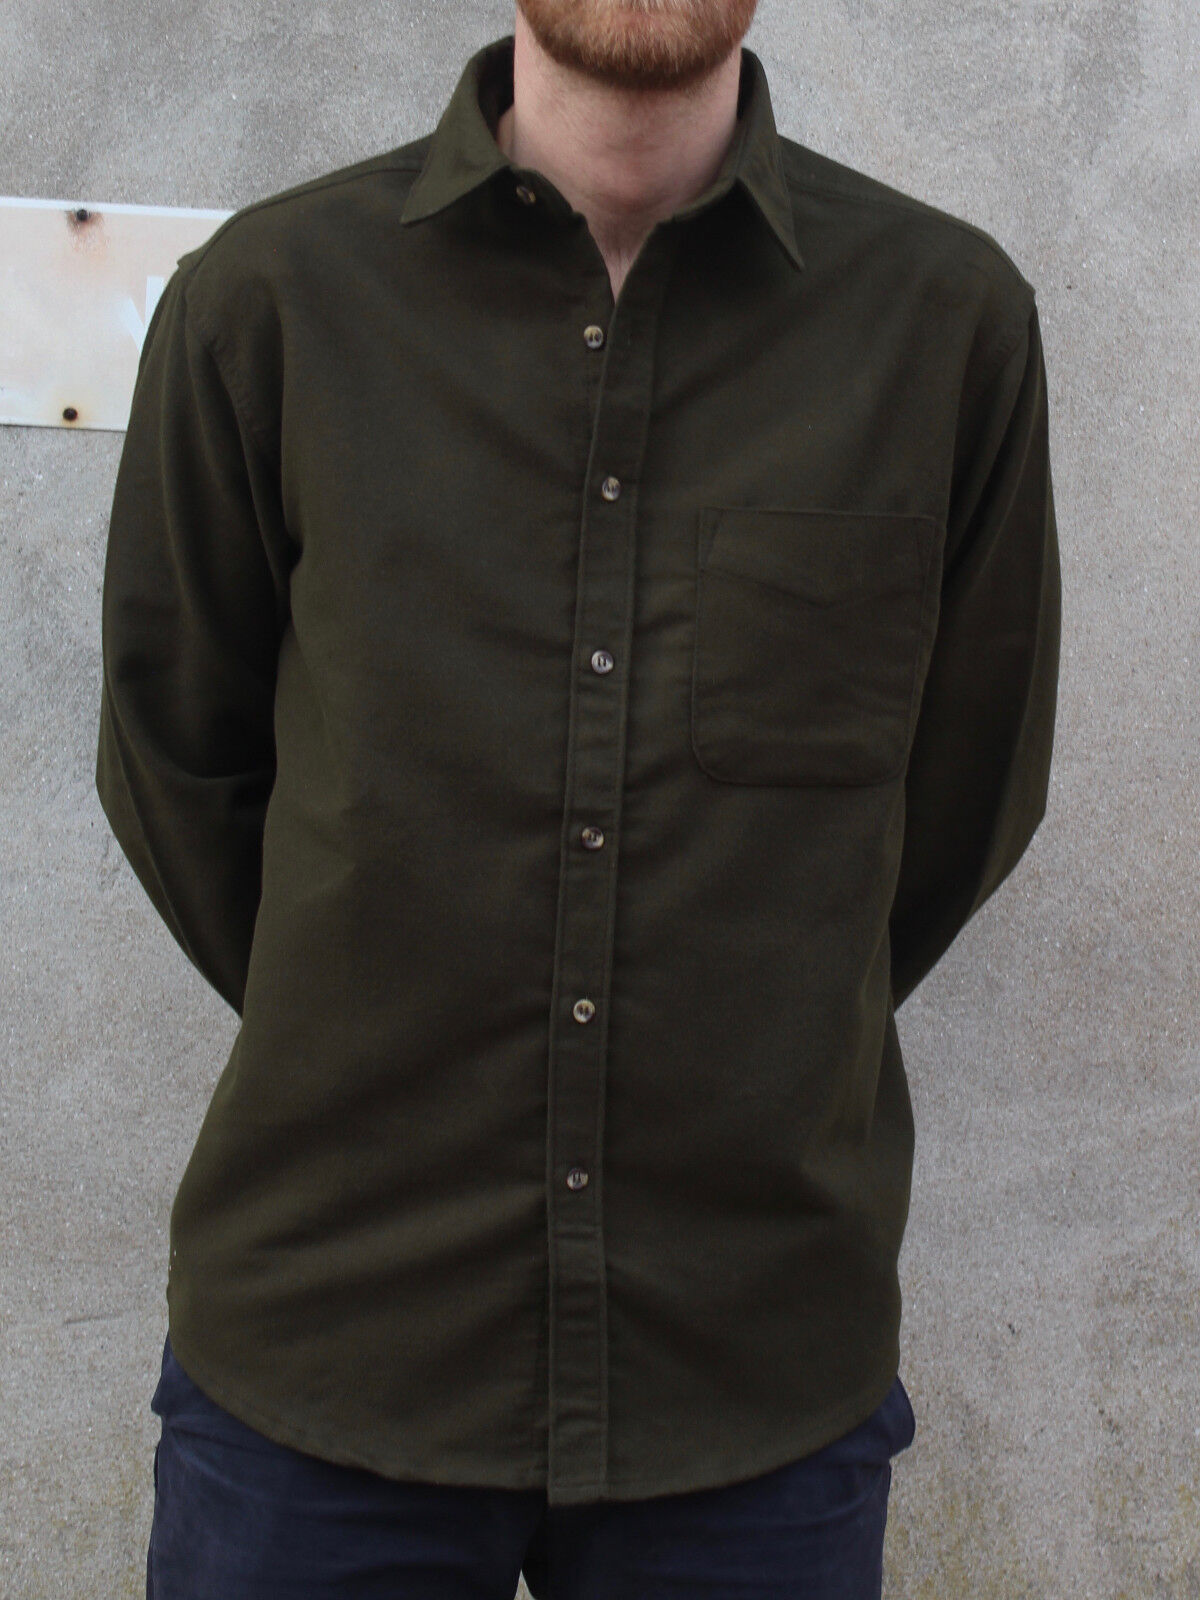 Deep Olive Grün Moleskin Country Country Country Shirt by Tails and the Unexpected     | Lebensecht  8c012d